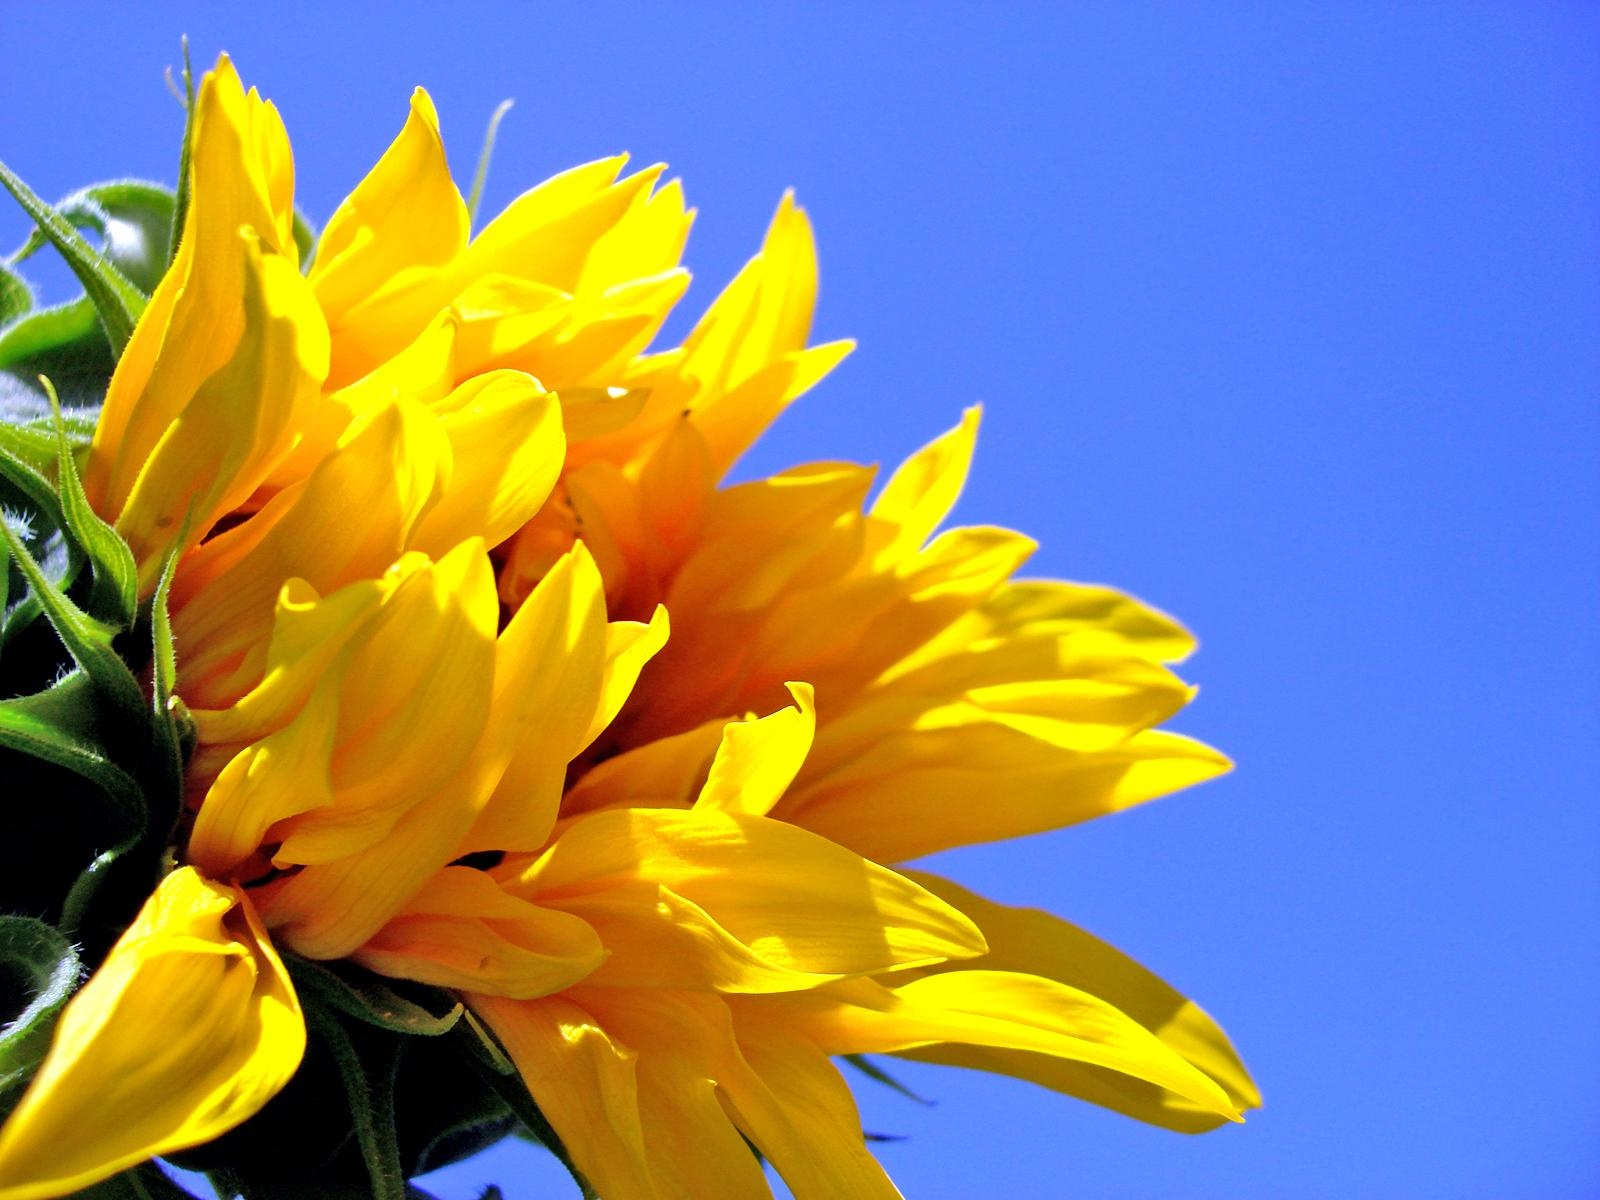 click to free download the wallpaper--Nature Landscape with Flowers, Smiling Sunflowers, the Blue Sky, Incredible Look  1600X1200 free wallpaper download